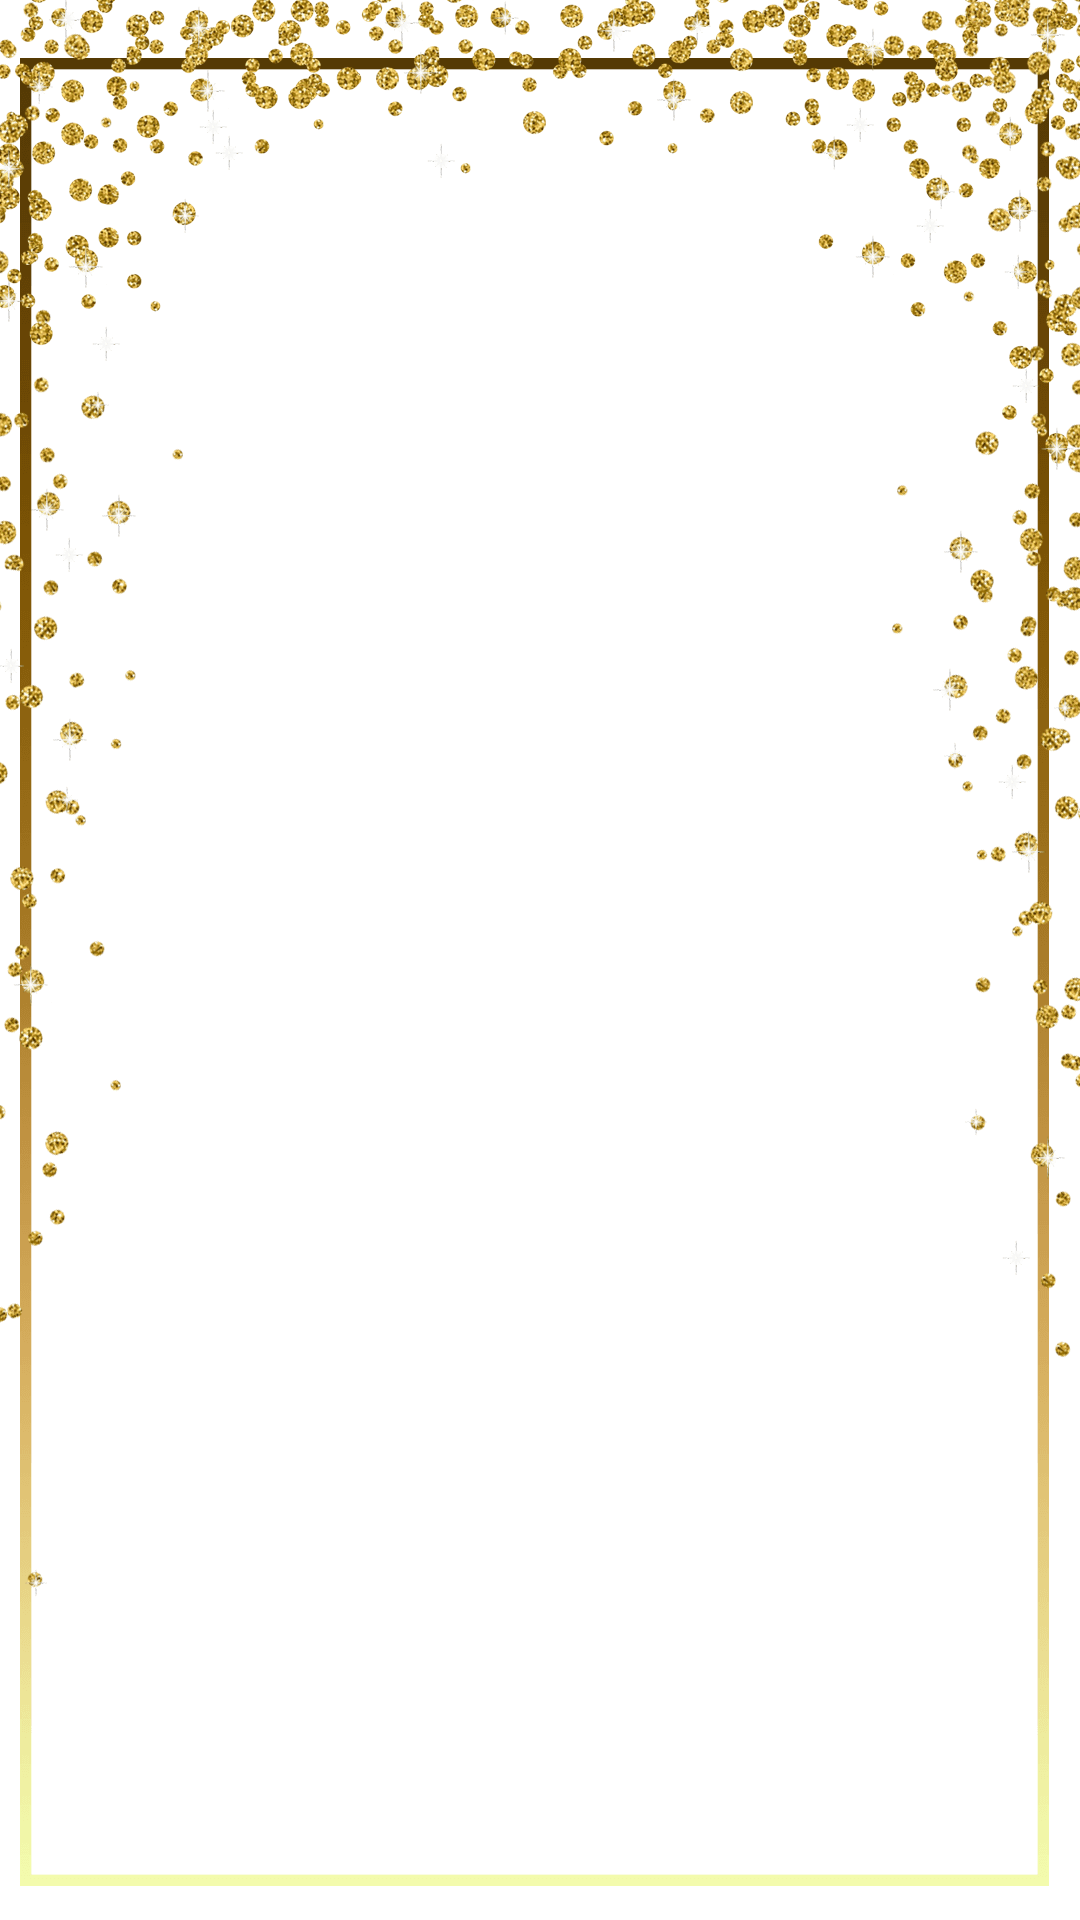 Gold glitter frame png.  border for free